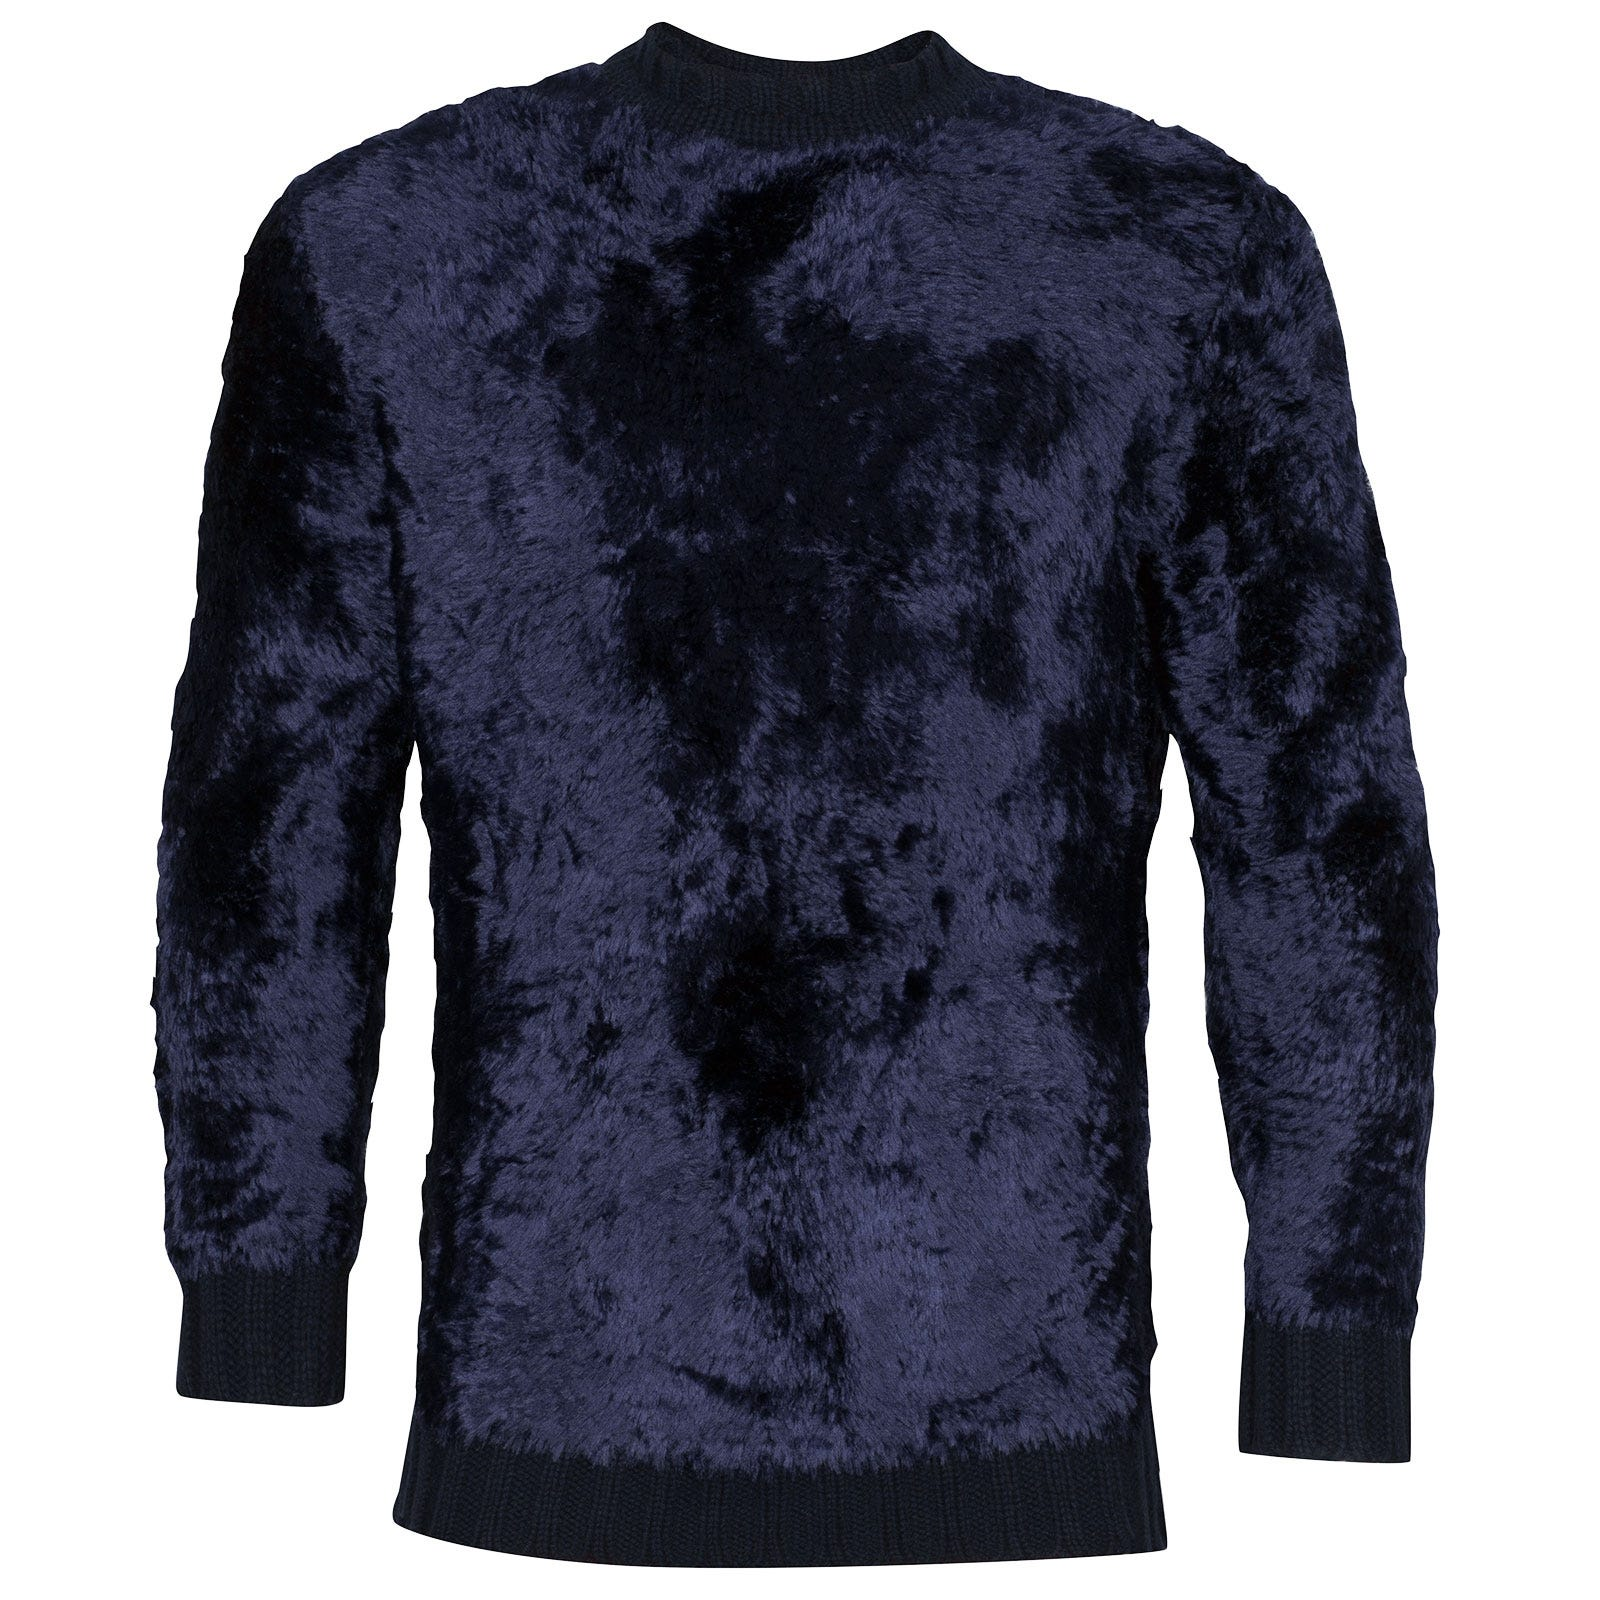 John Smedley Manby Pullover in Midnight-XS